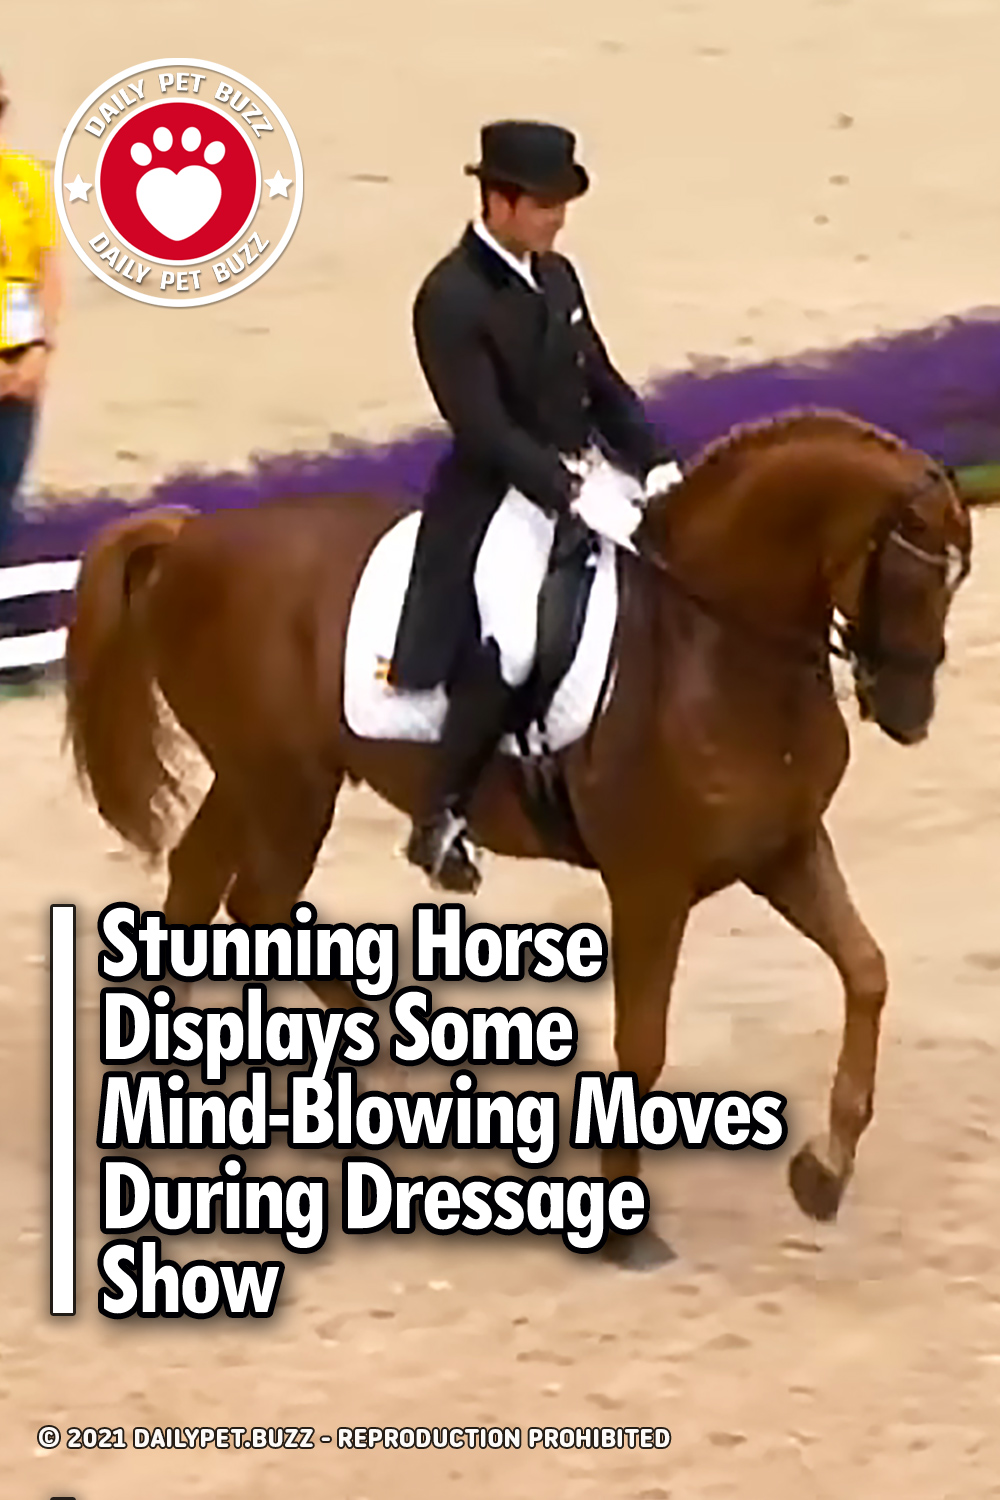 Stunning Horse Displays Some Mind-Blowing Moves During Dressage Show